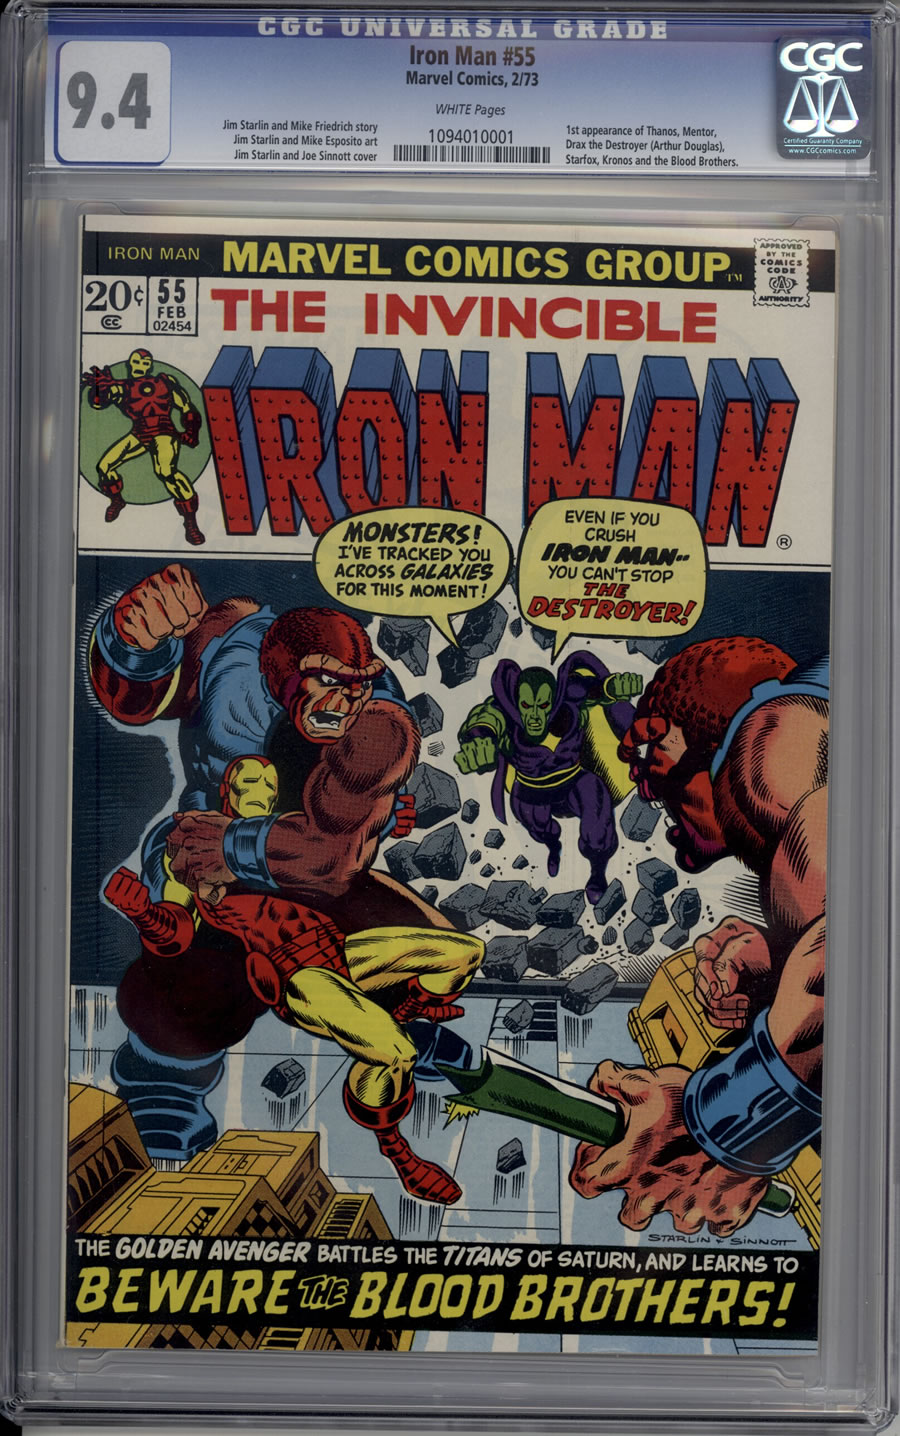 IRON MAN # 55, 9.4 NM CGC